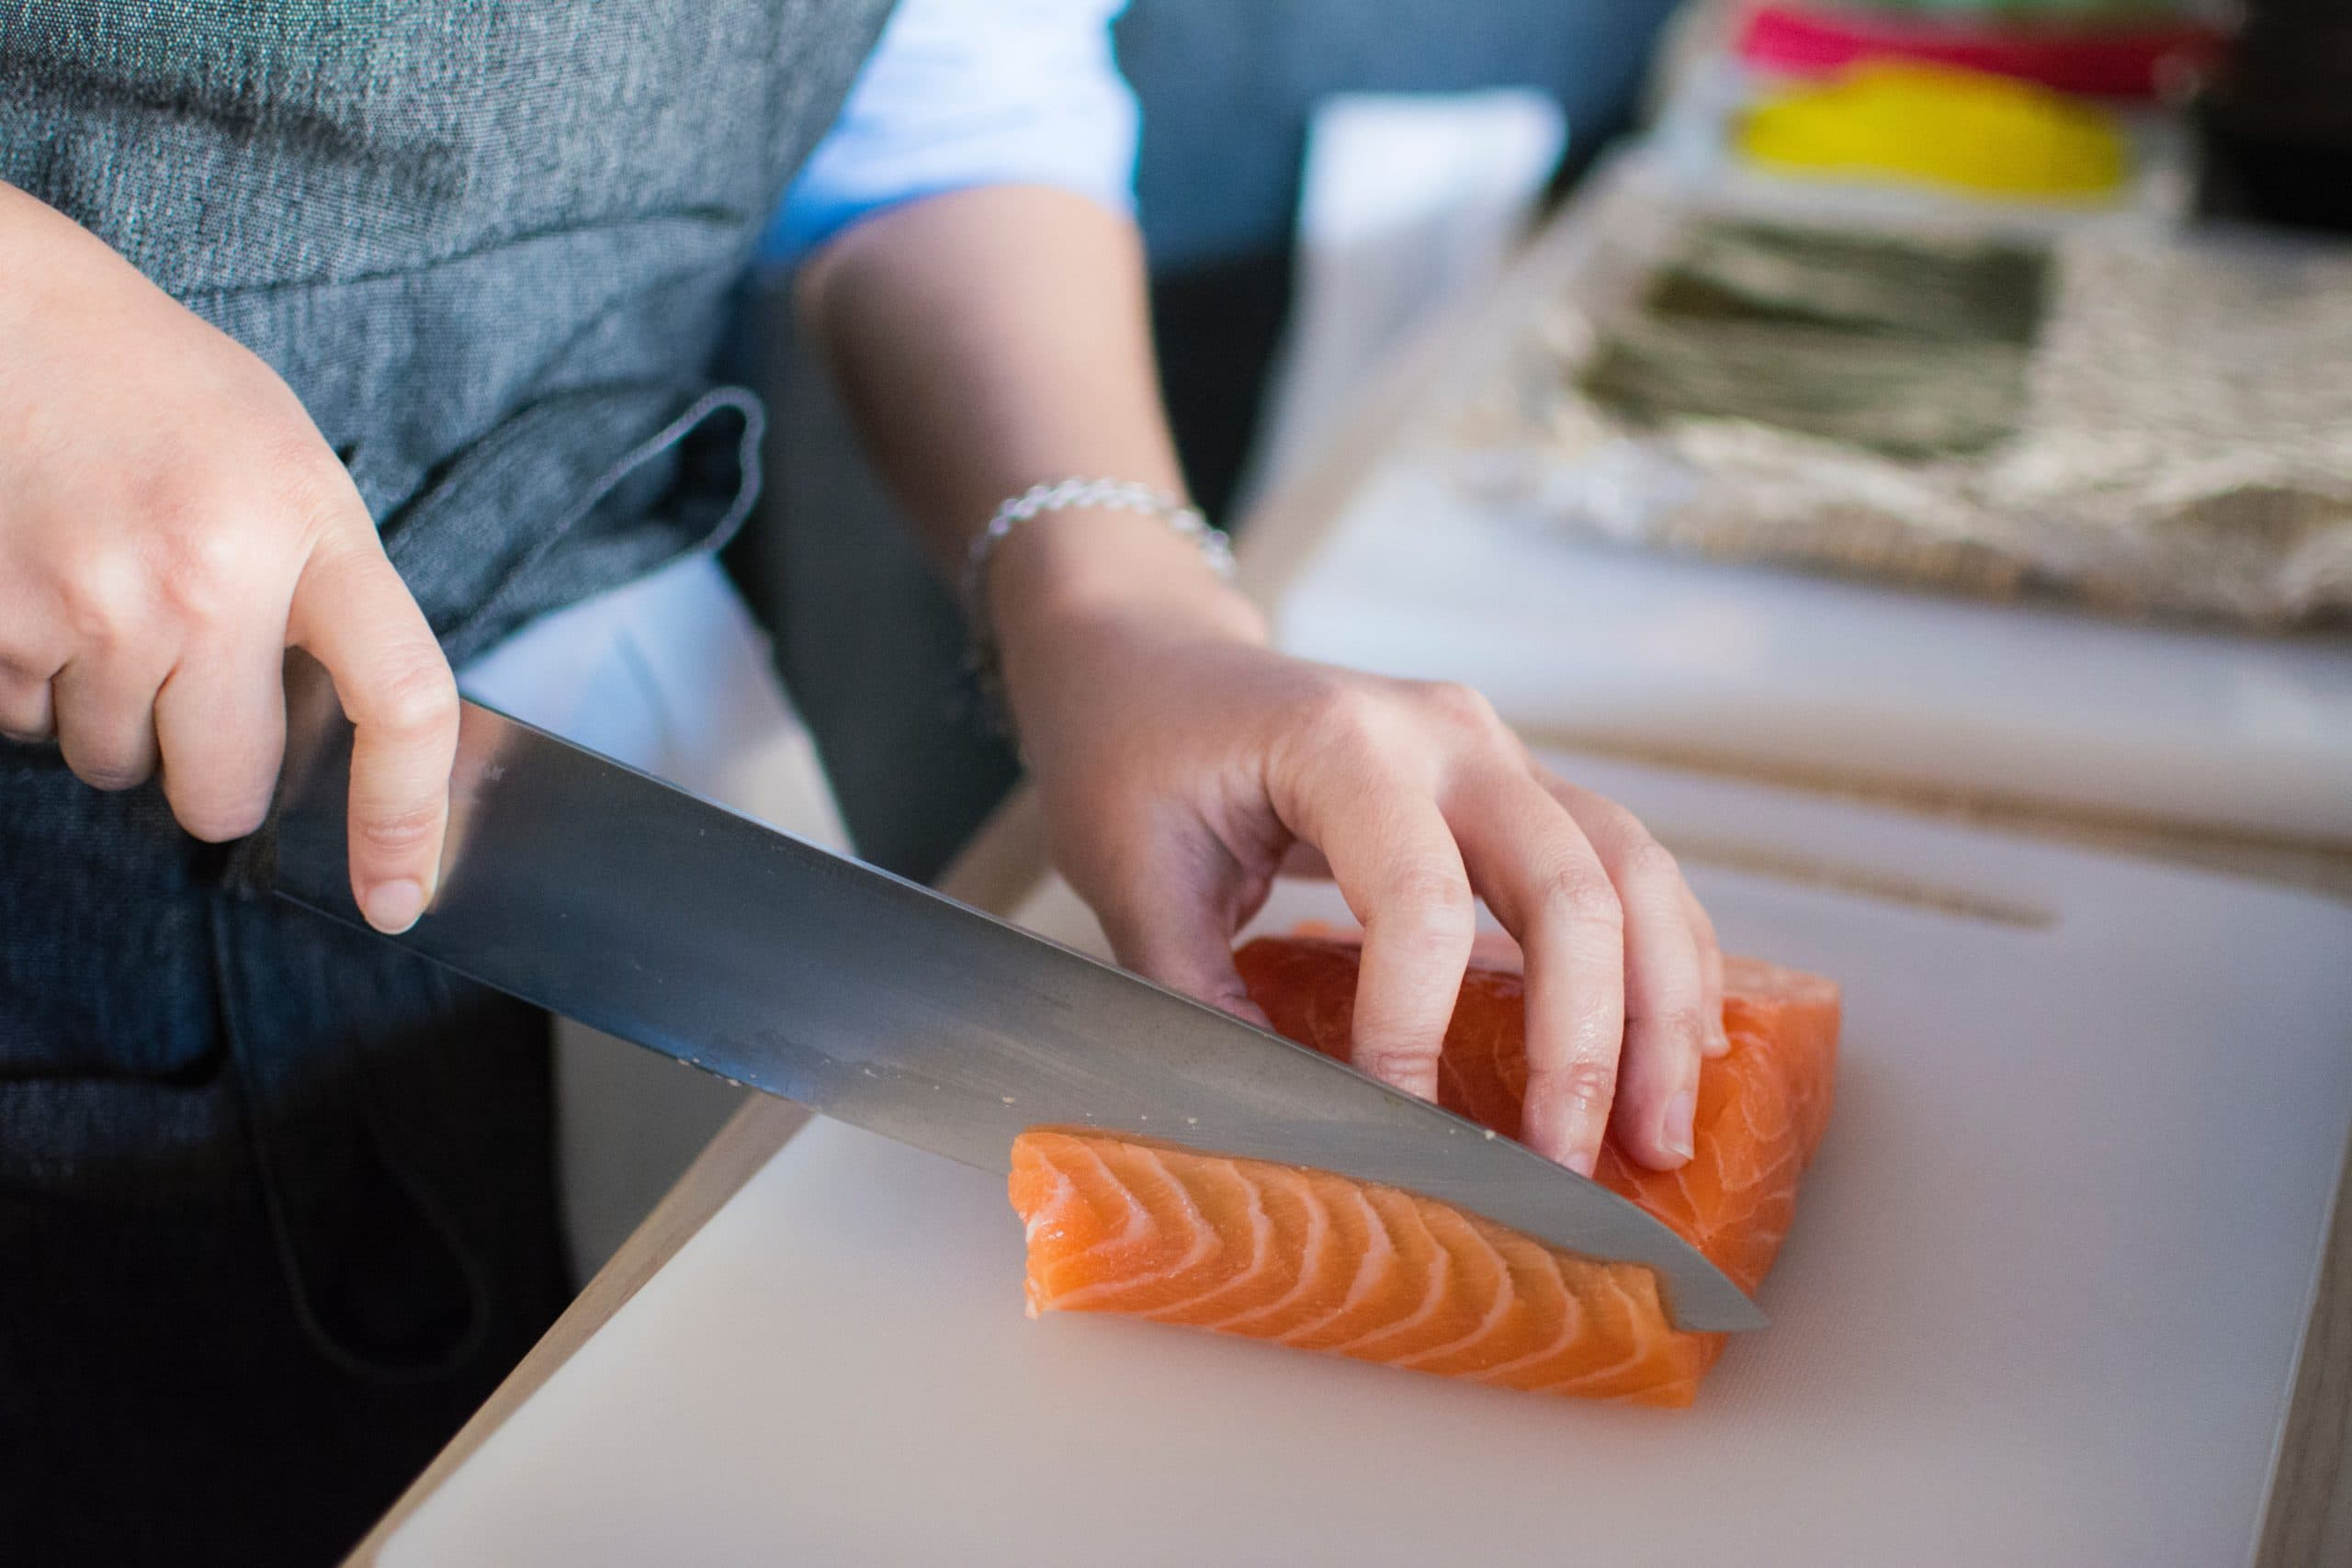 person slicing salmon on white cutting board